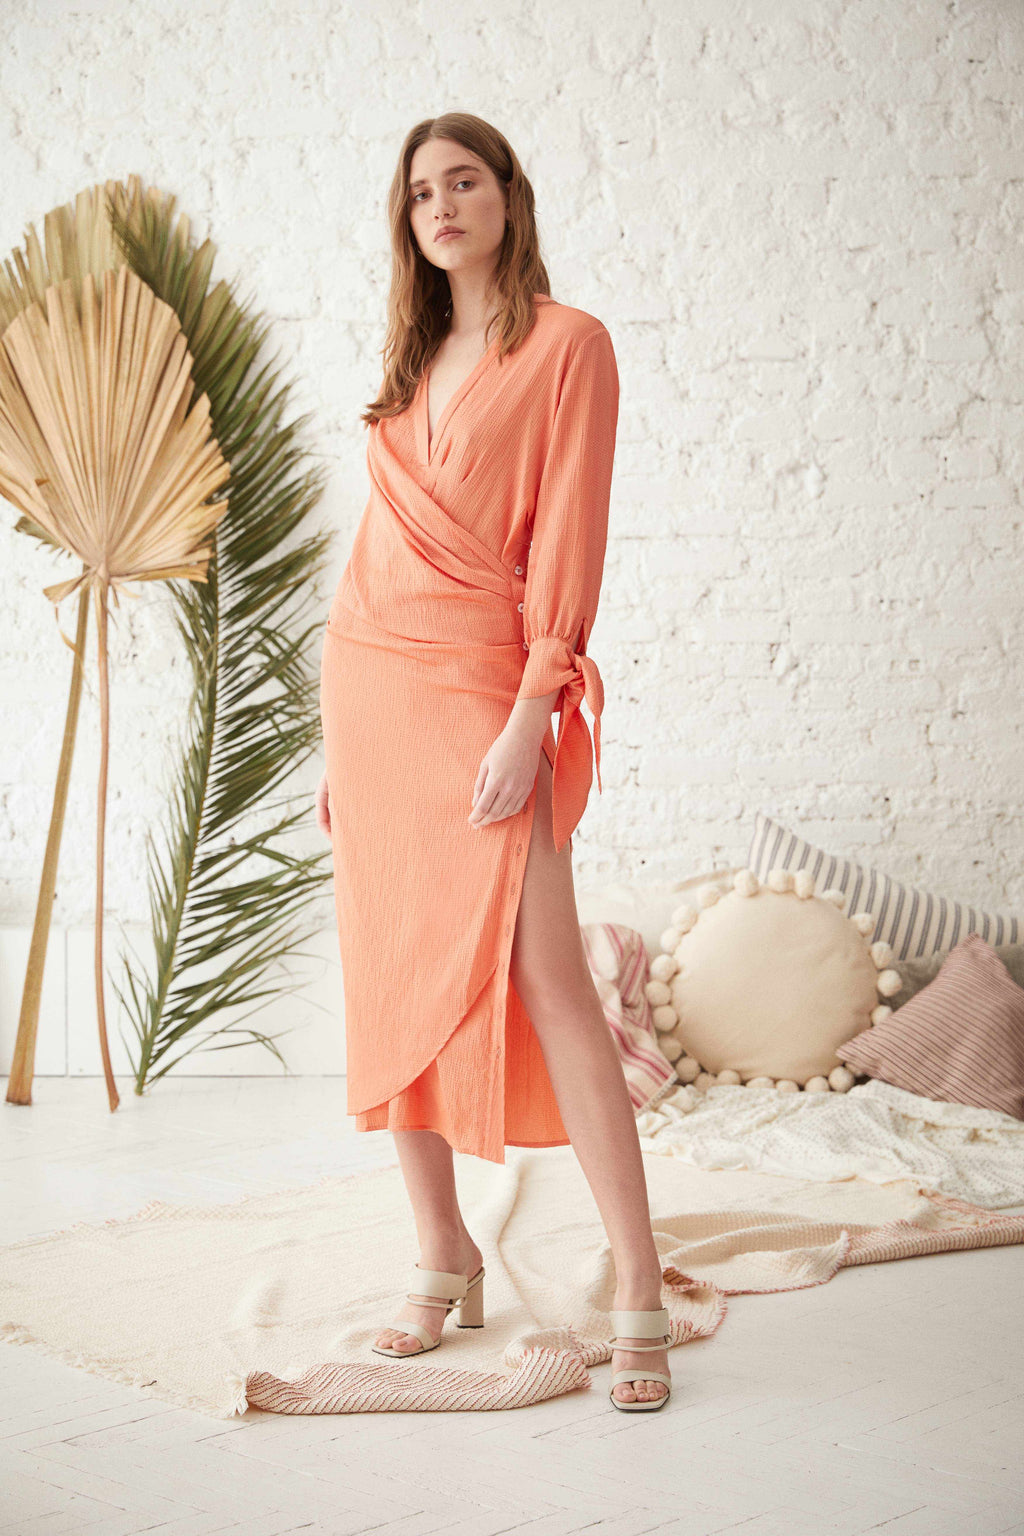 ANTIBES DRESS -LONG IN APRICOT / UZUN ANTIBES ELBİSE